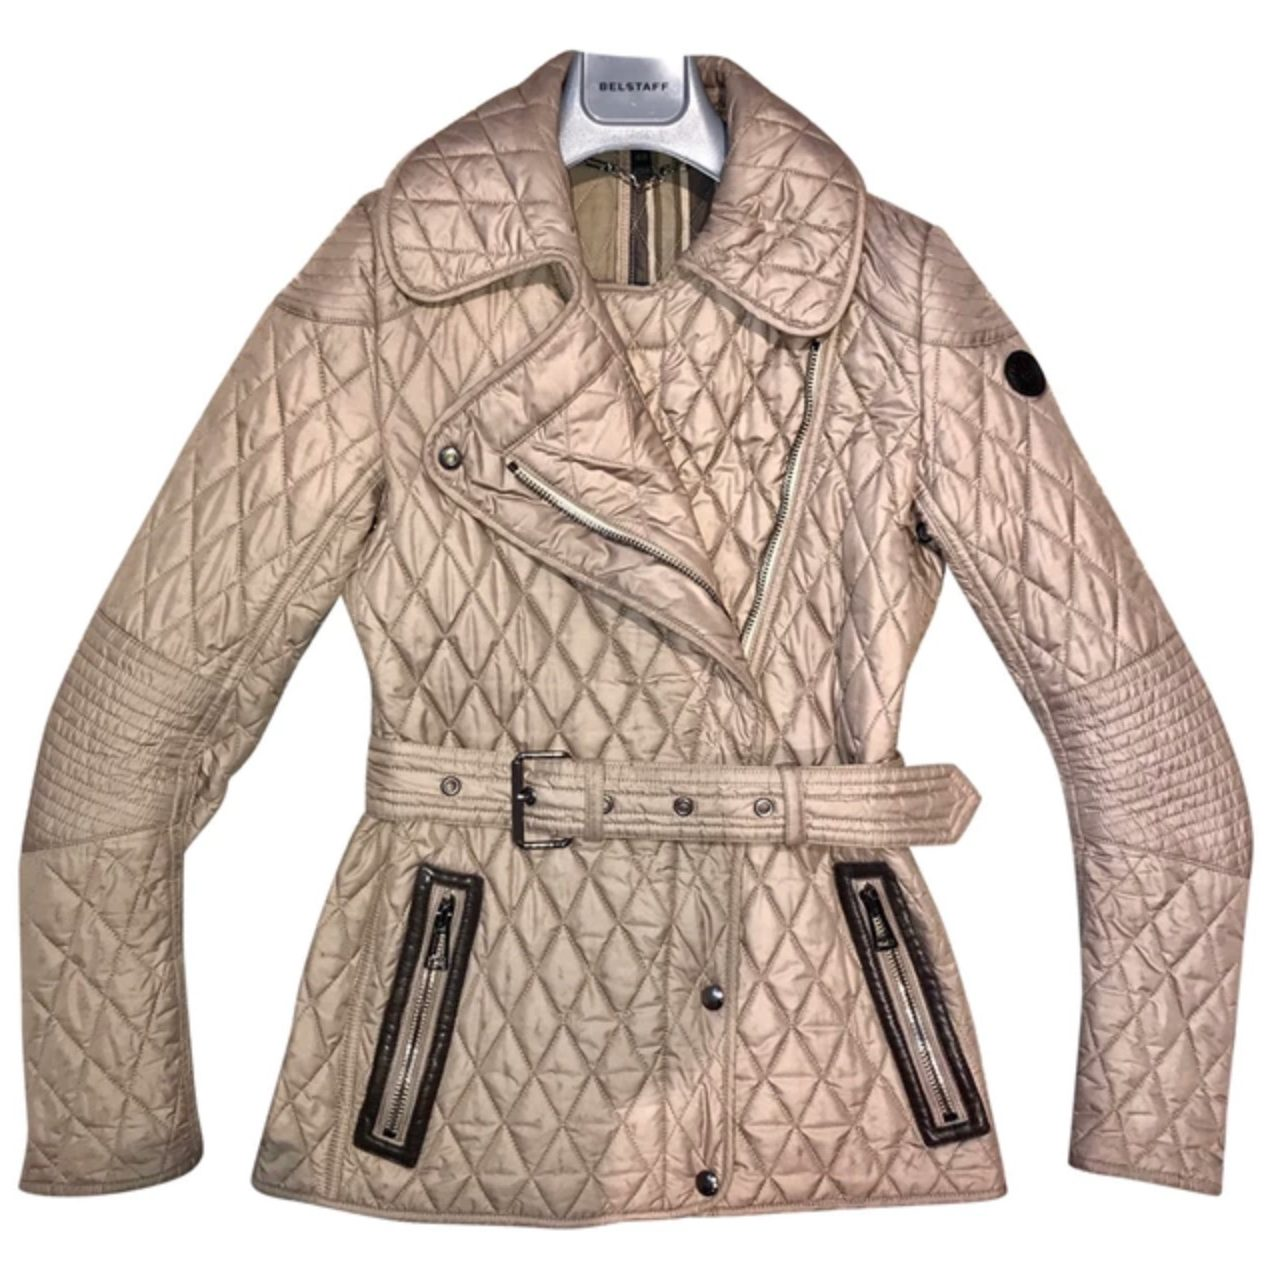 Comparison of best consignment shops: Belstaff quilted metallic jacket at Vestiare Collective